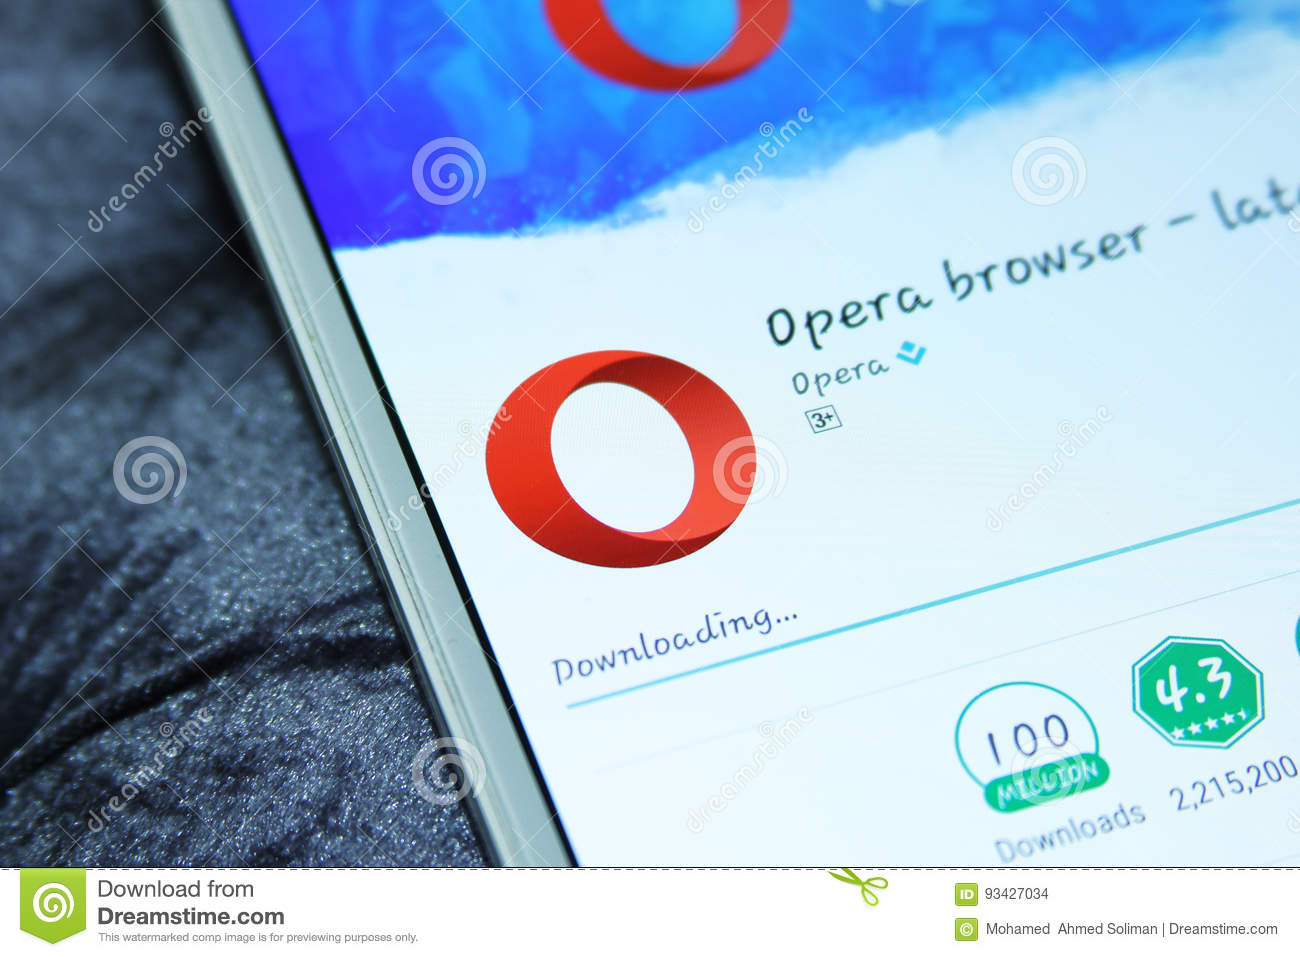 Free download opera mobile 11 android app web browser | free.